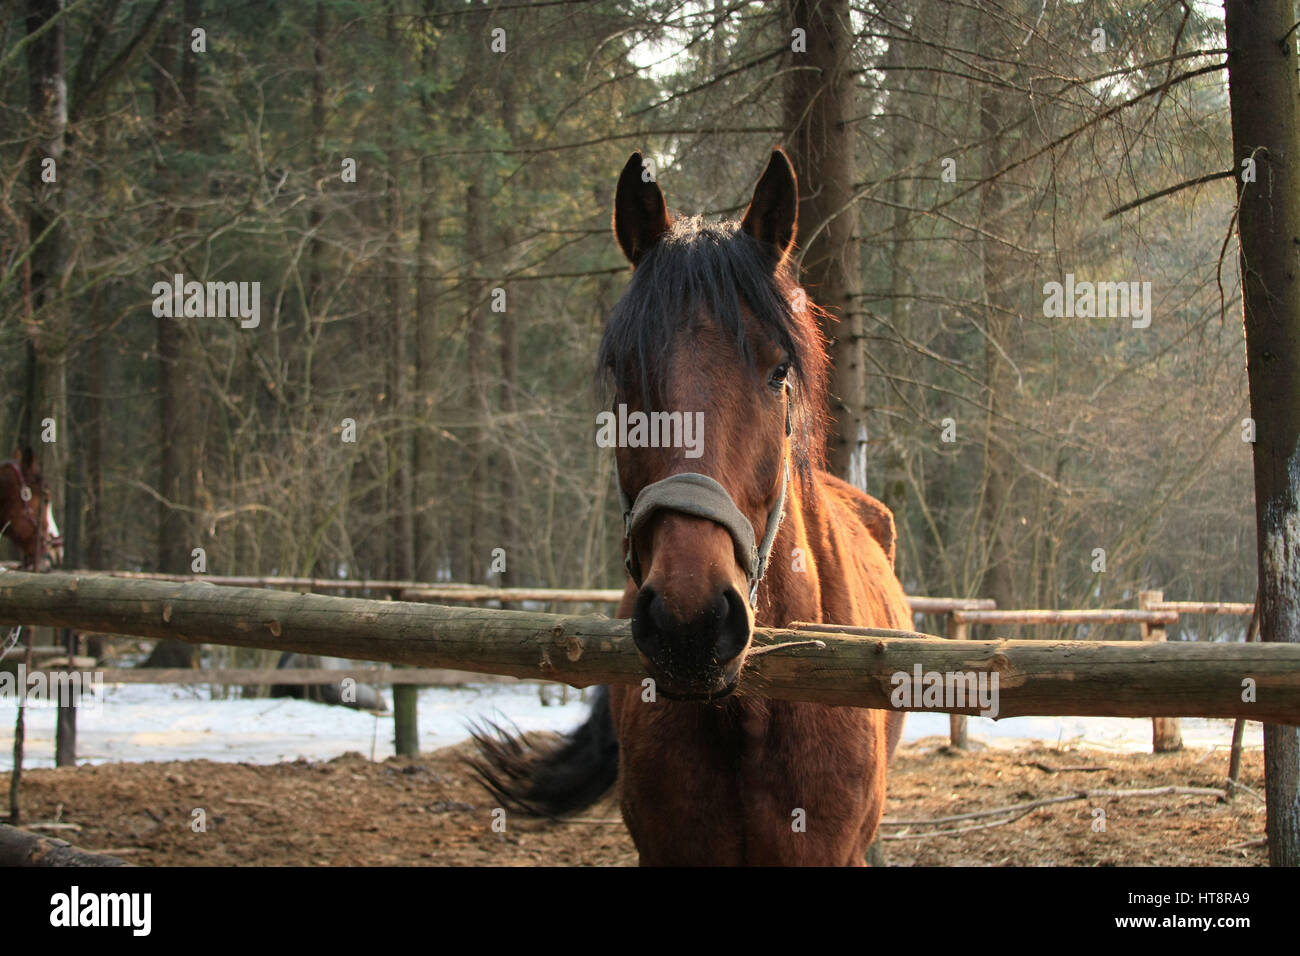 Bay horse standing in the paddock in the woods and looking at the camera. - Stock Image